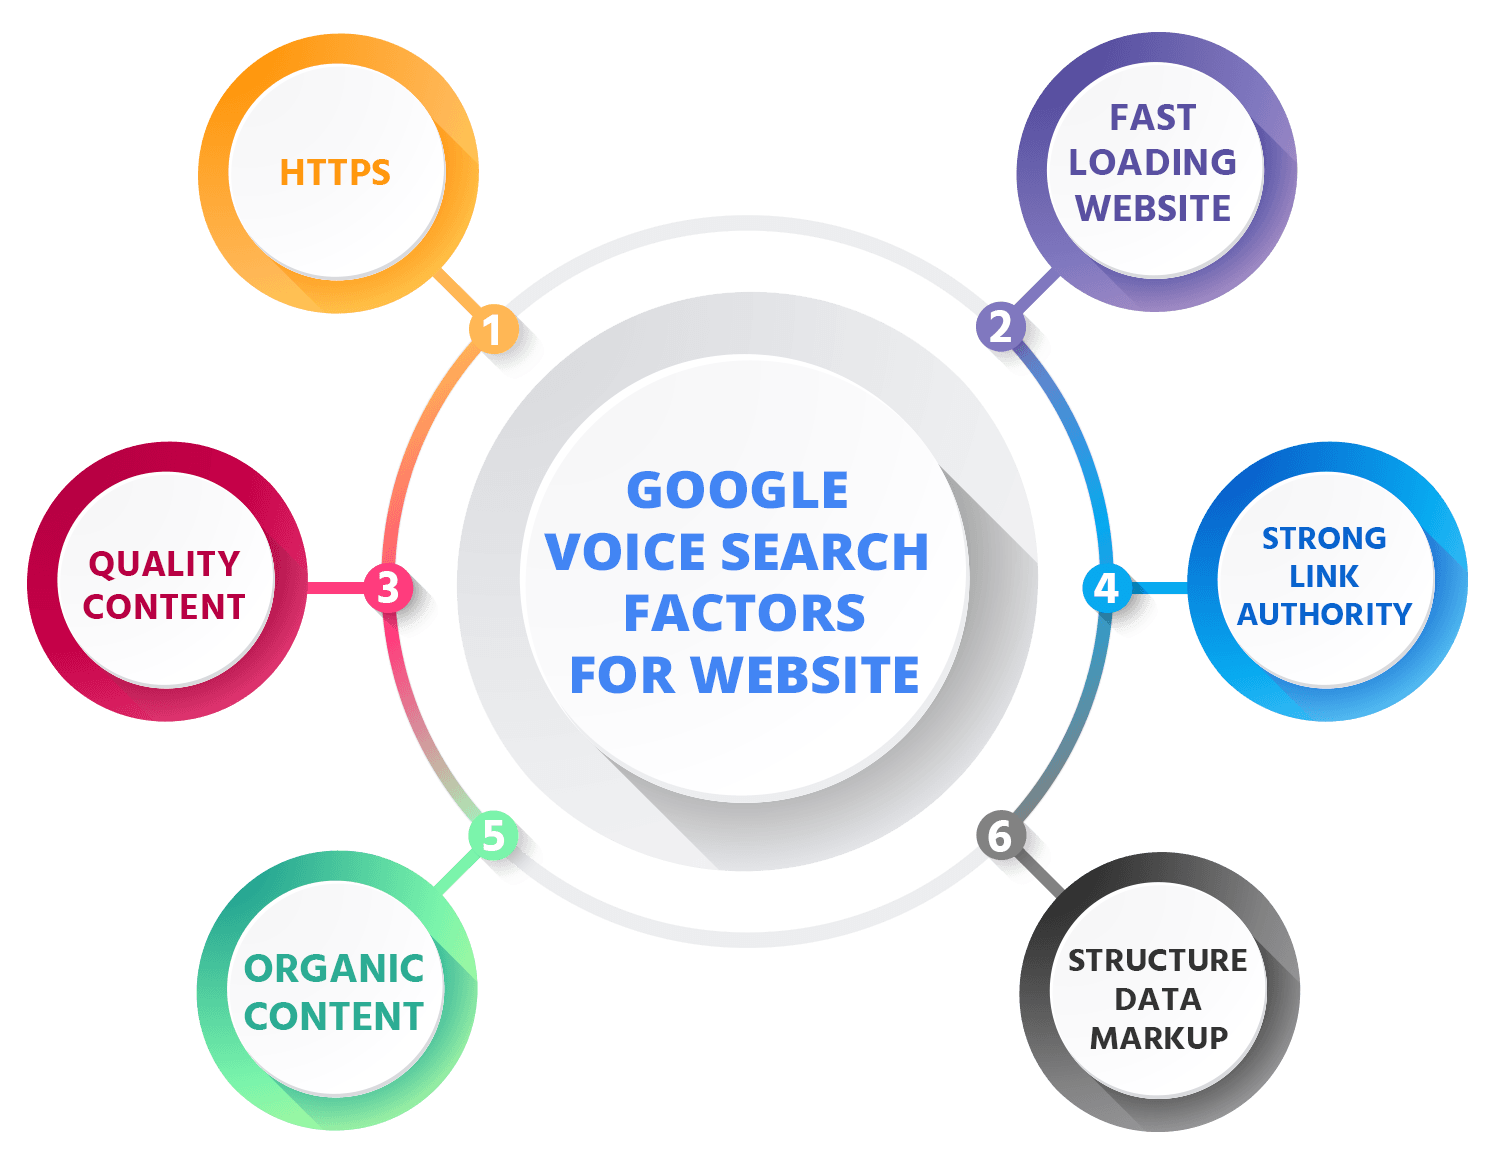 google voice search factors